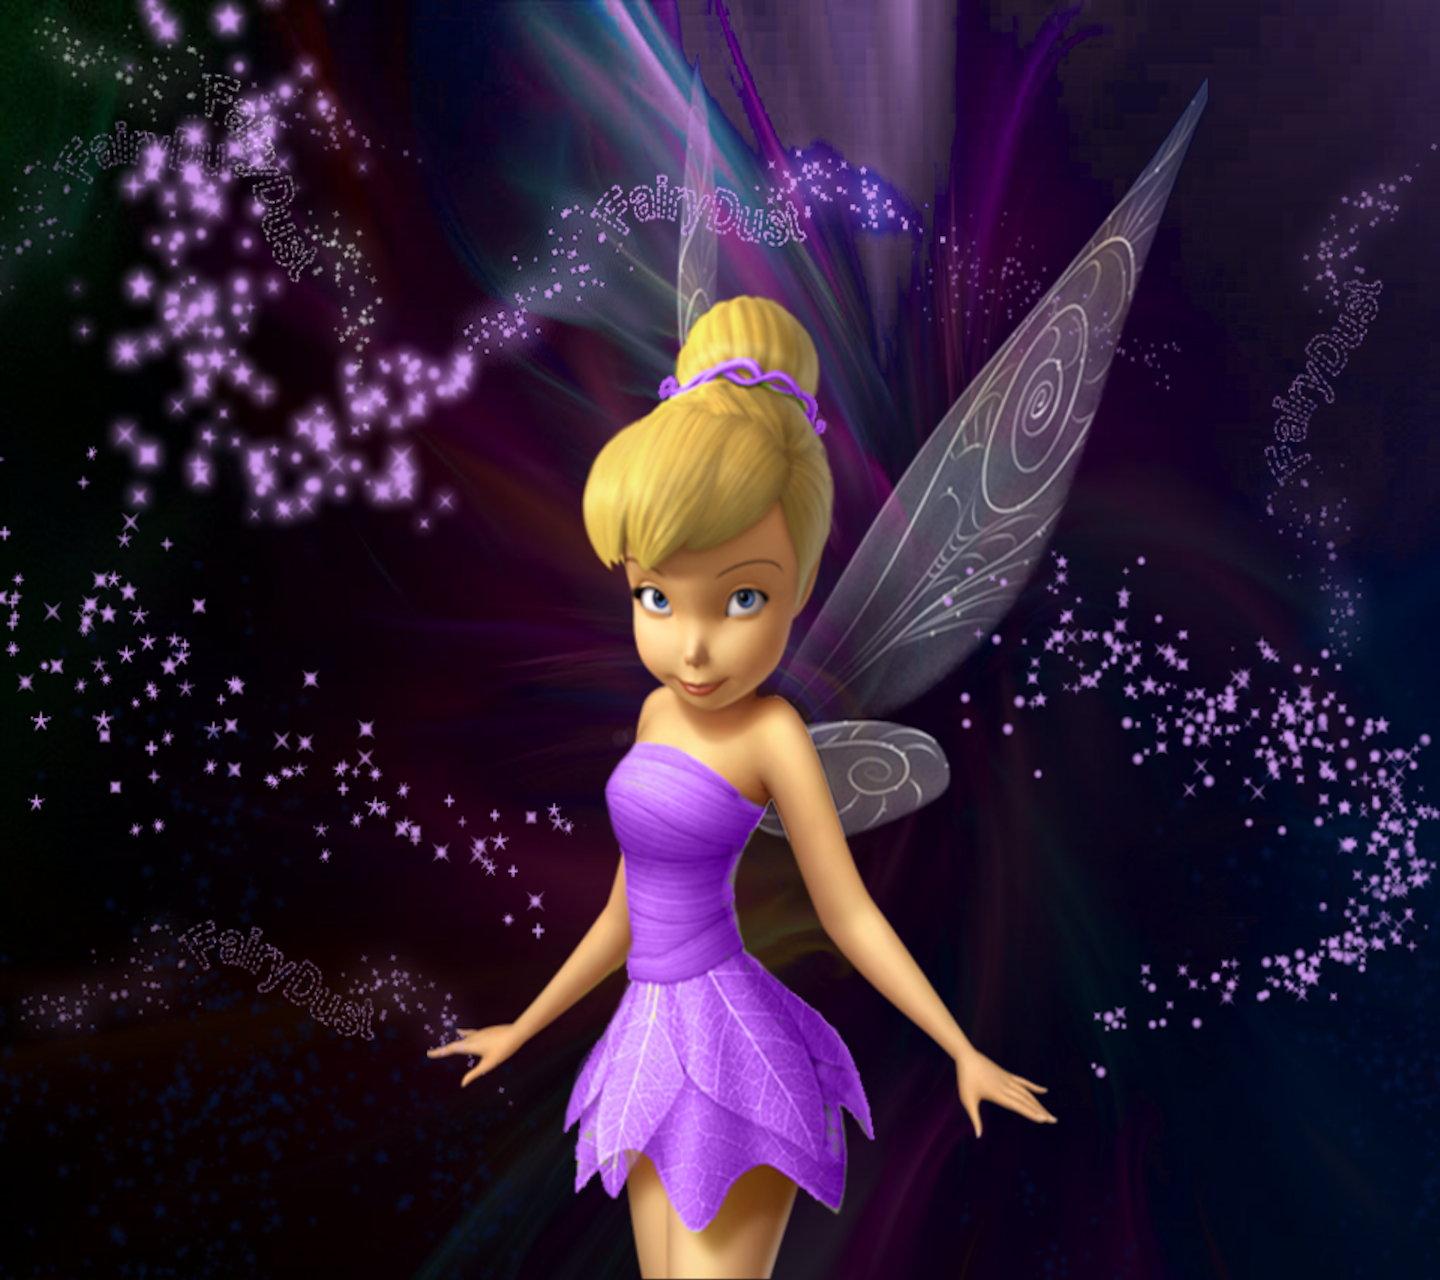 free tinkerbell live wallpaper wallpapersafari